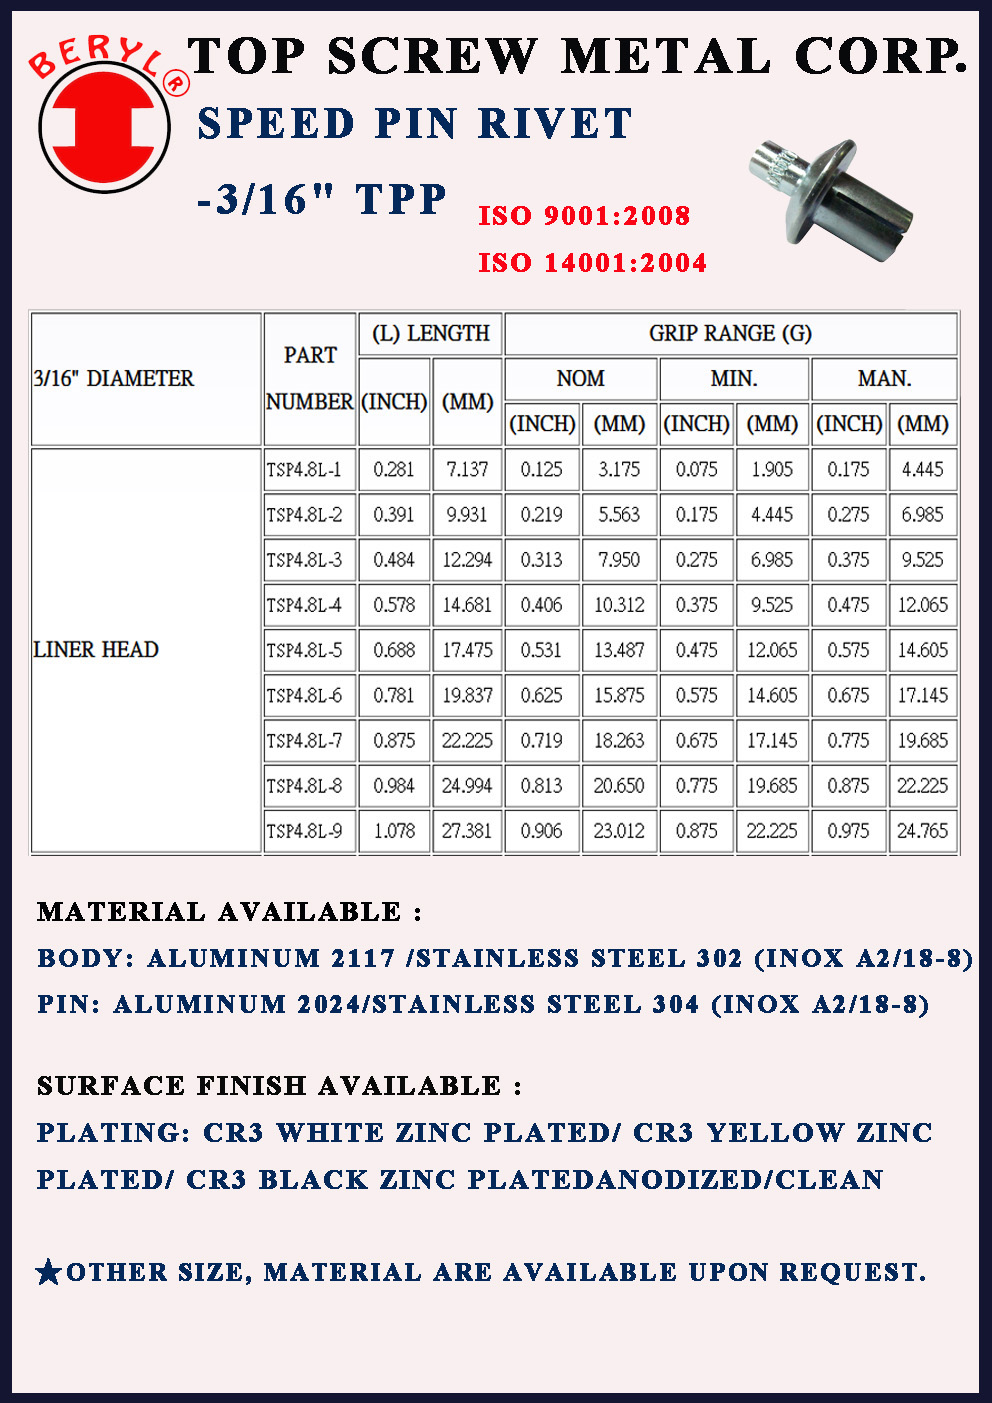 STEEL BLIND RIVET NUT, STAINLESS STEEL BLIND RIVET NUT, STAINLESS STEEL 316 BLIND RIVET,Fasteners, rivet nut, inserts, rivet, nuts, screws, bolts, studs, blind rivet nuts , self-clinching, bolt rivet nuts, e self-driving nut, self-tapping threaded inserts, sex bolts, PEM nut, binding post, Chicago screw, barrel nut, post, special blind rivet, security fastener, blind jack nut, welding stud, hardware parts, construction hardware,BLIND NUT, RIVET NUT, TOP SCREW METAL CORP, TOPS SCREW METAL CORP,INSERT NUT,SPEED PIN RIVET,DRIVE PIN RIVET,rivet,pin,speed,drive